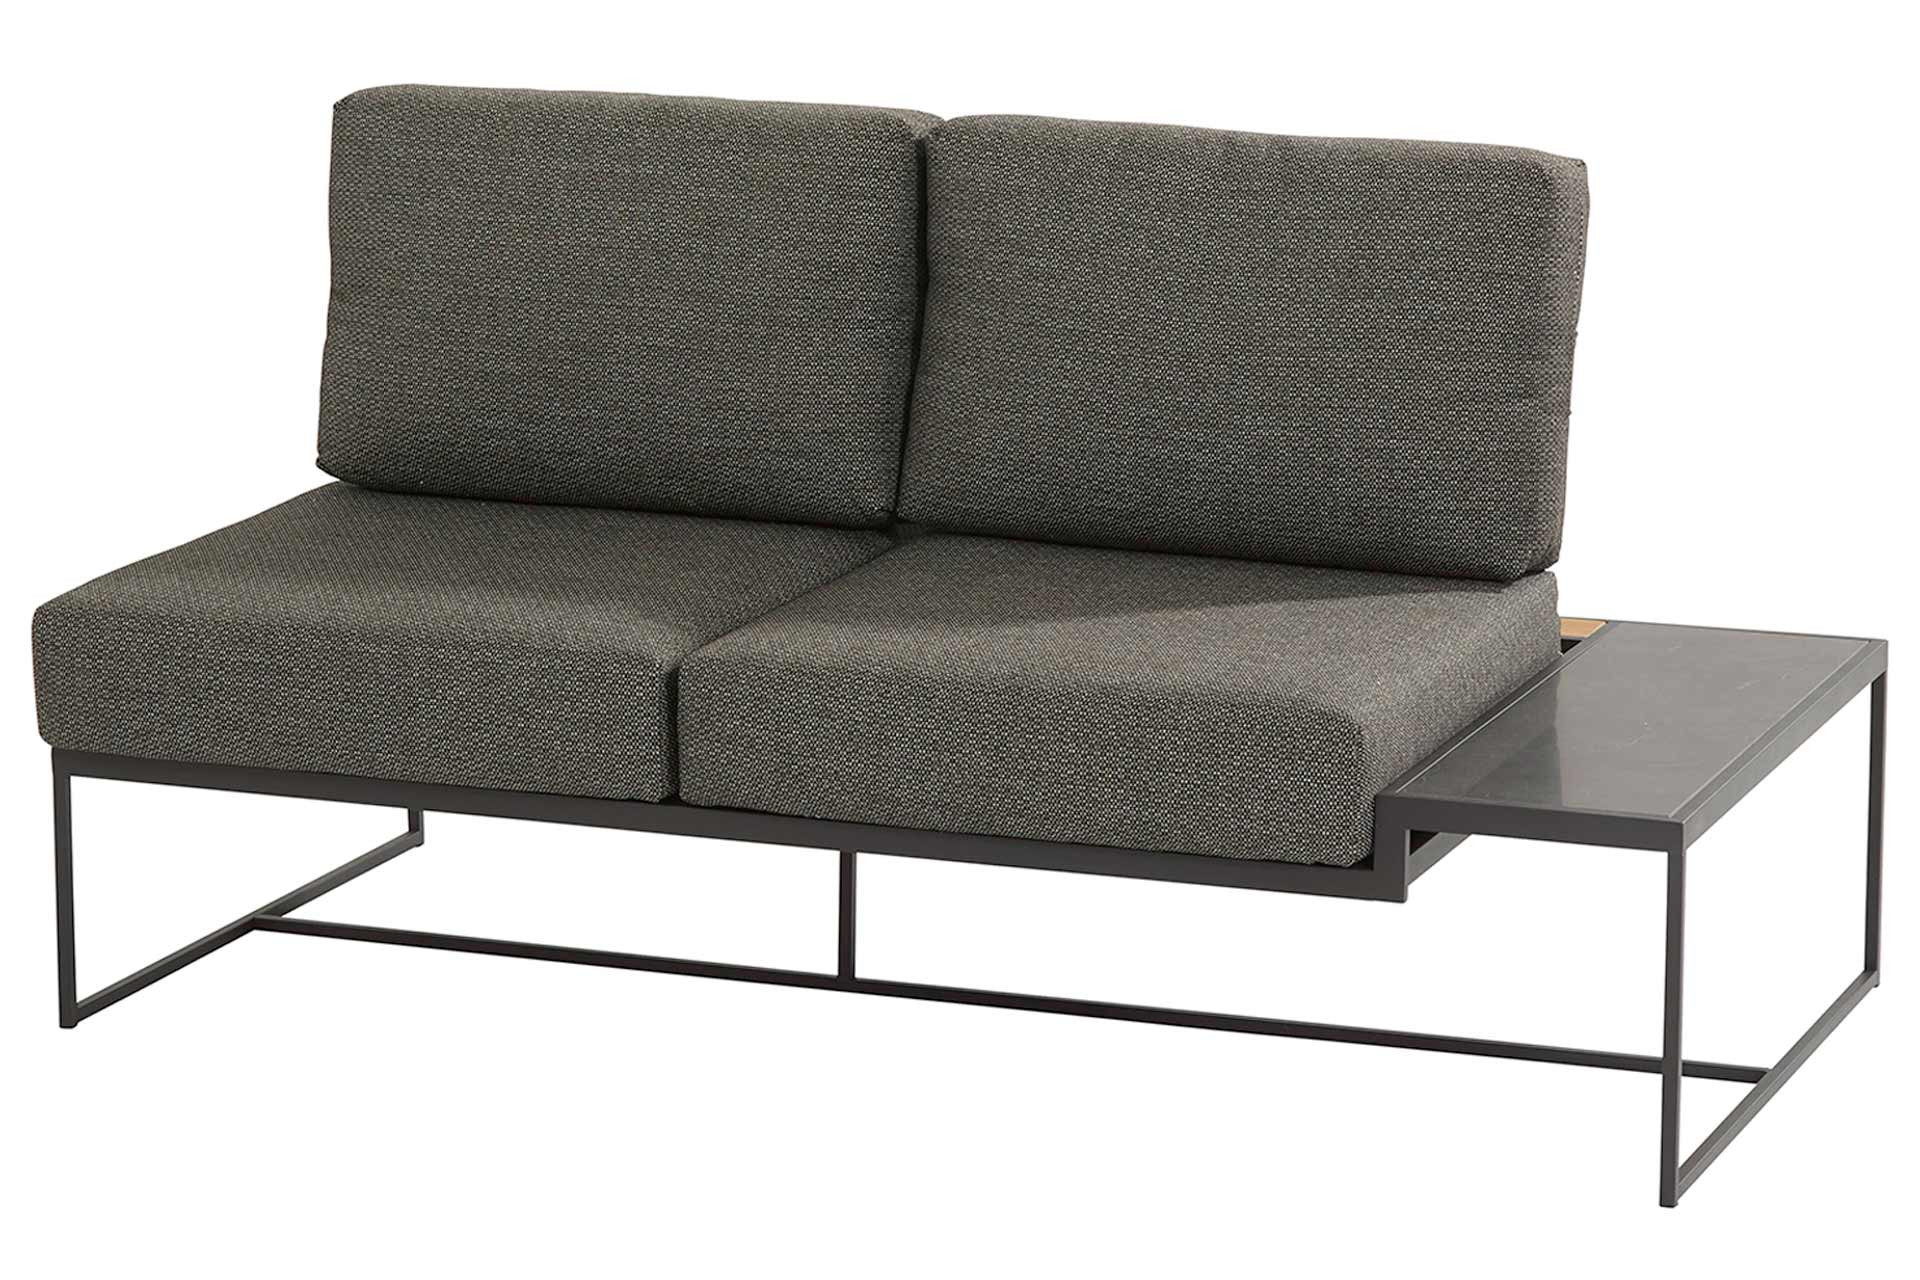 Patio platform 2 seater left with 4 cushions